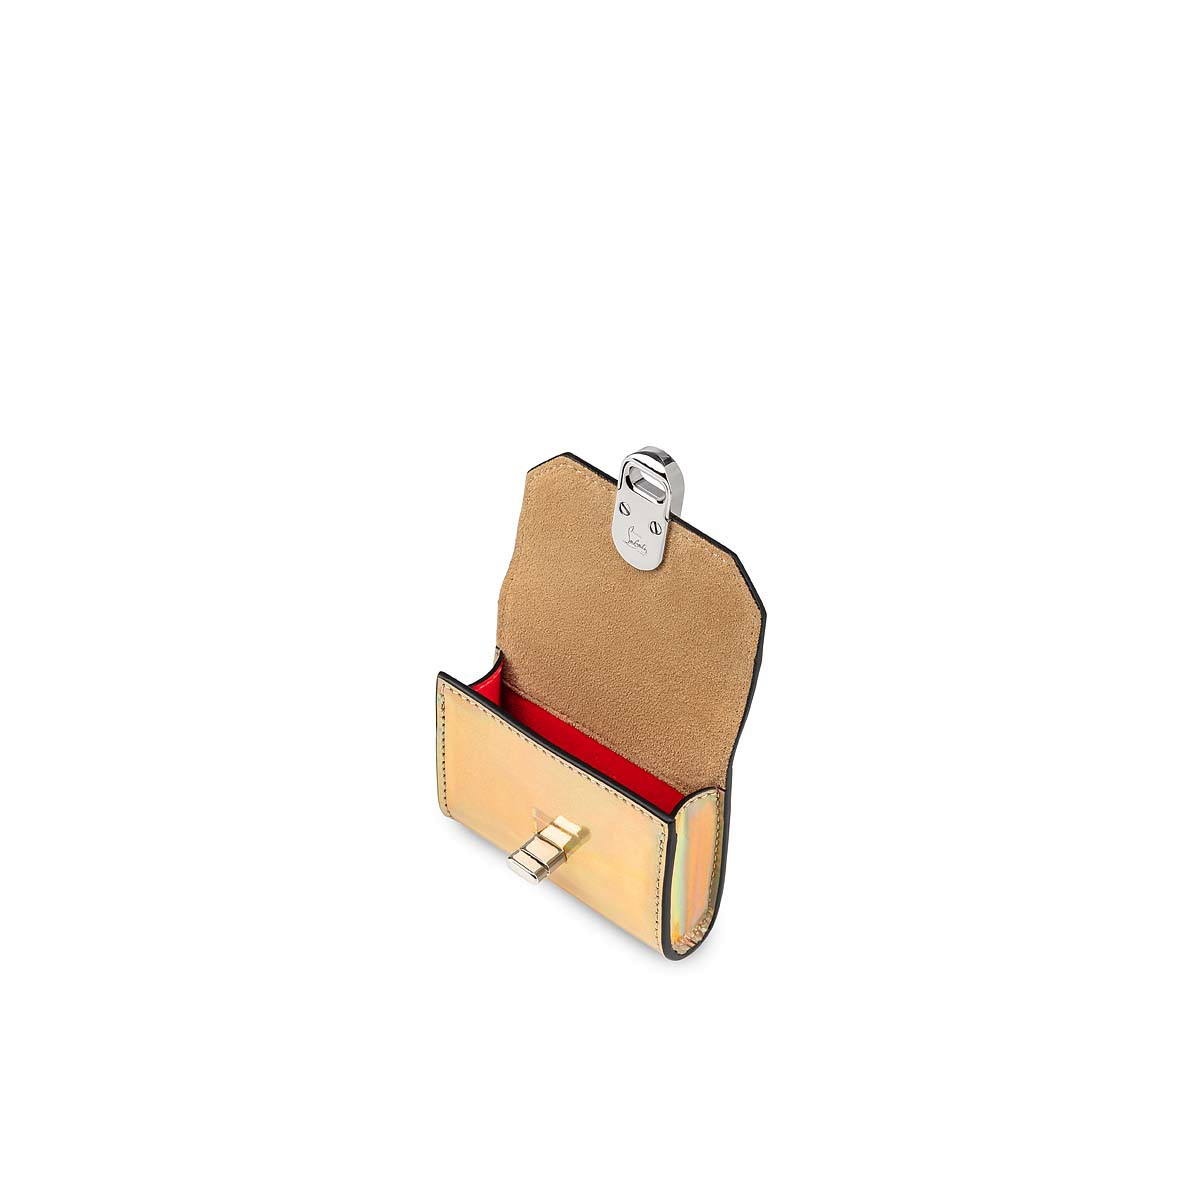 Small Leather Goods - Elisa For Airpods Pro - Christian Louboutin